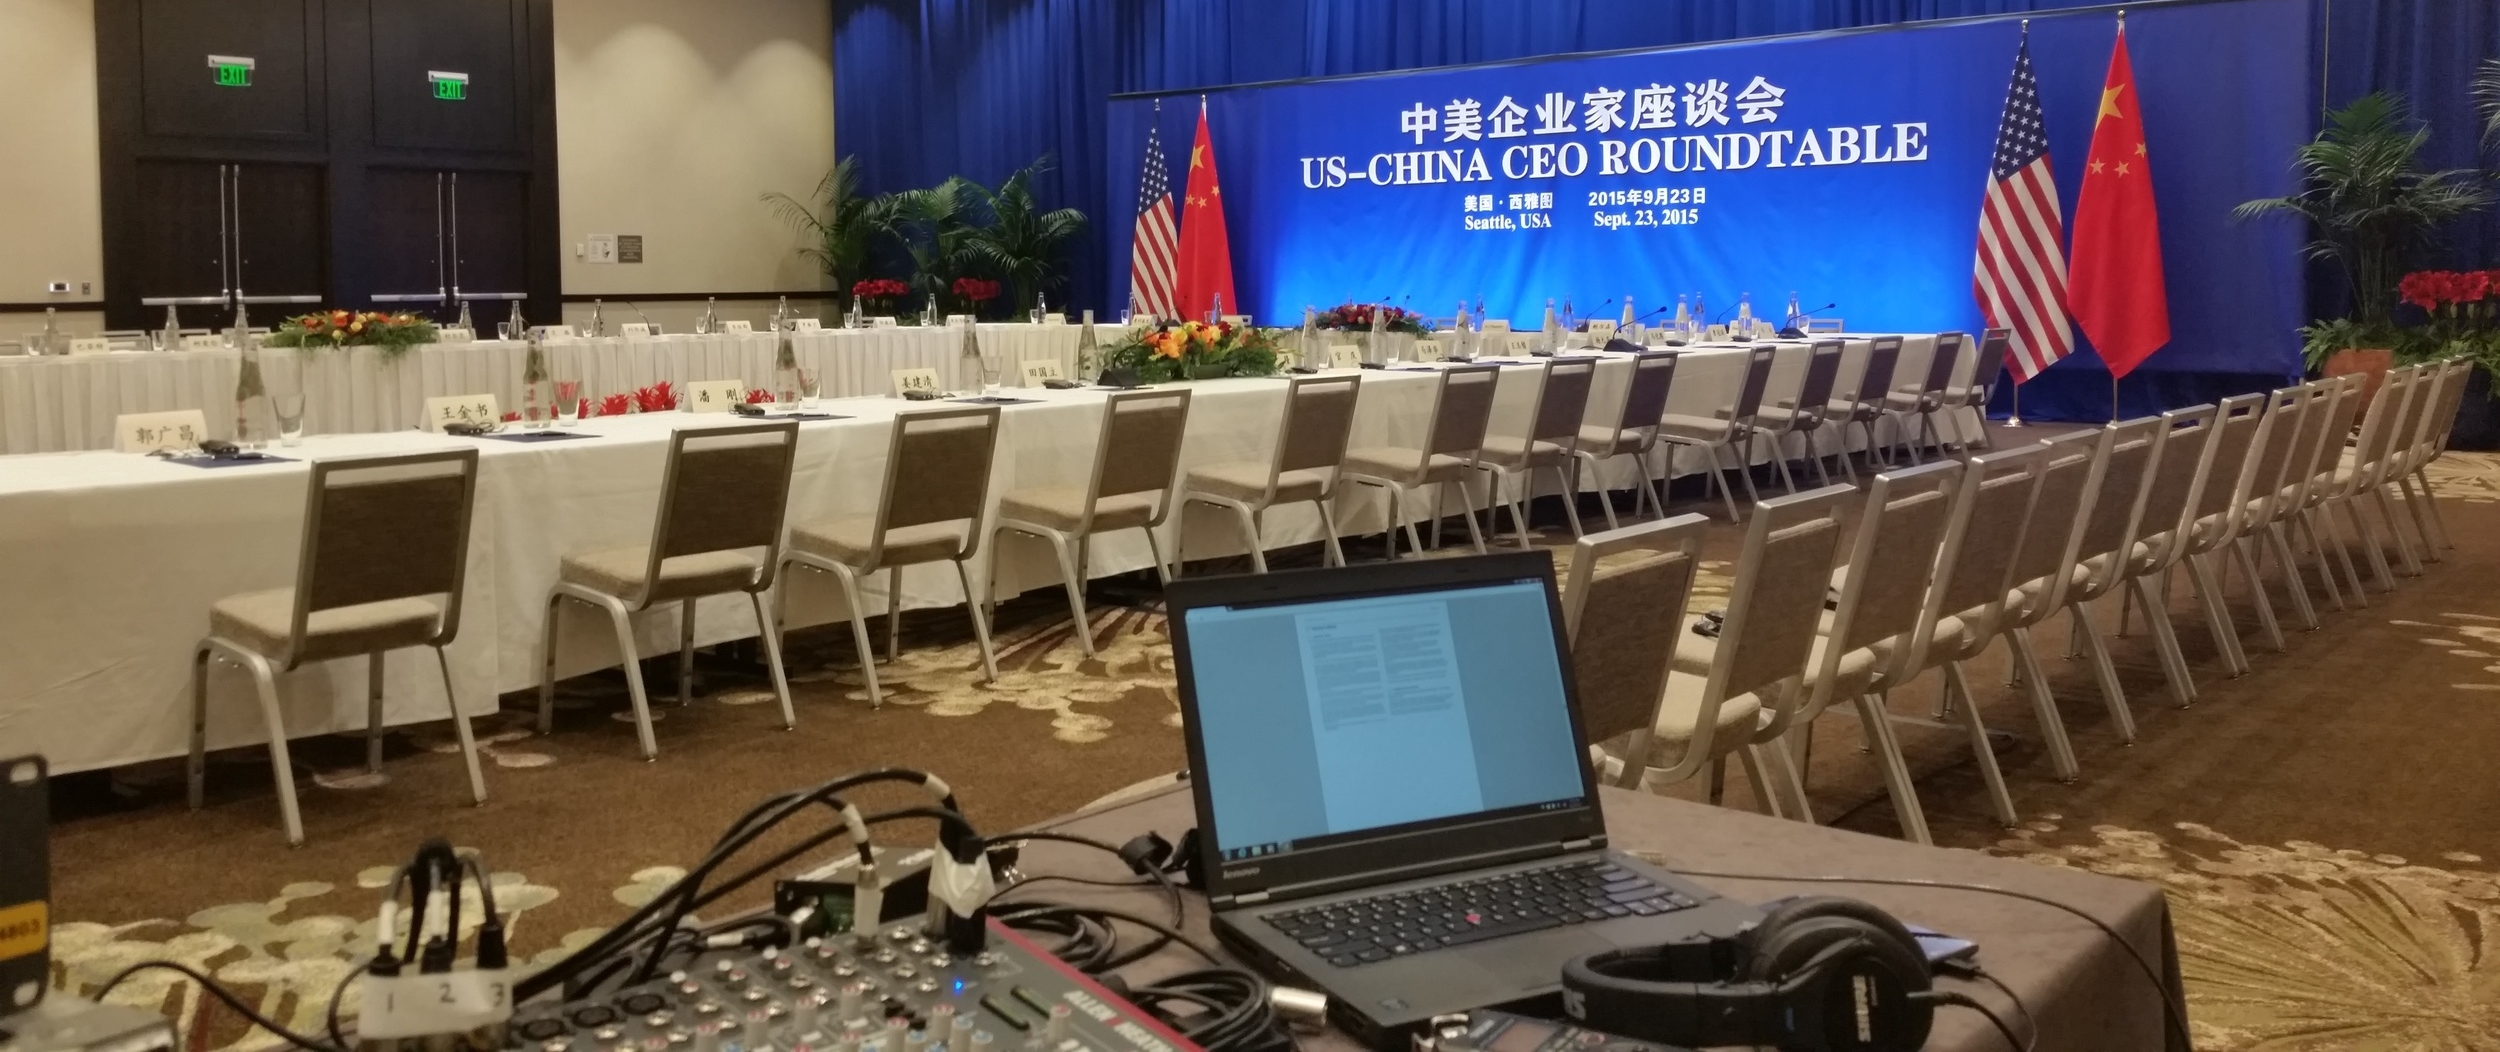 The room set for the President of China to meet with US heads of industry, such as the CEOs of Apple, IBM, Boeing, Microsoft and many more